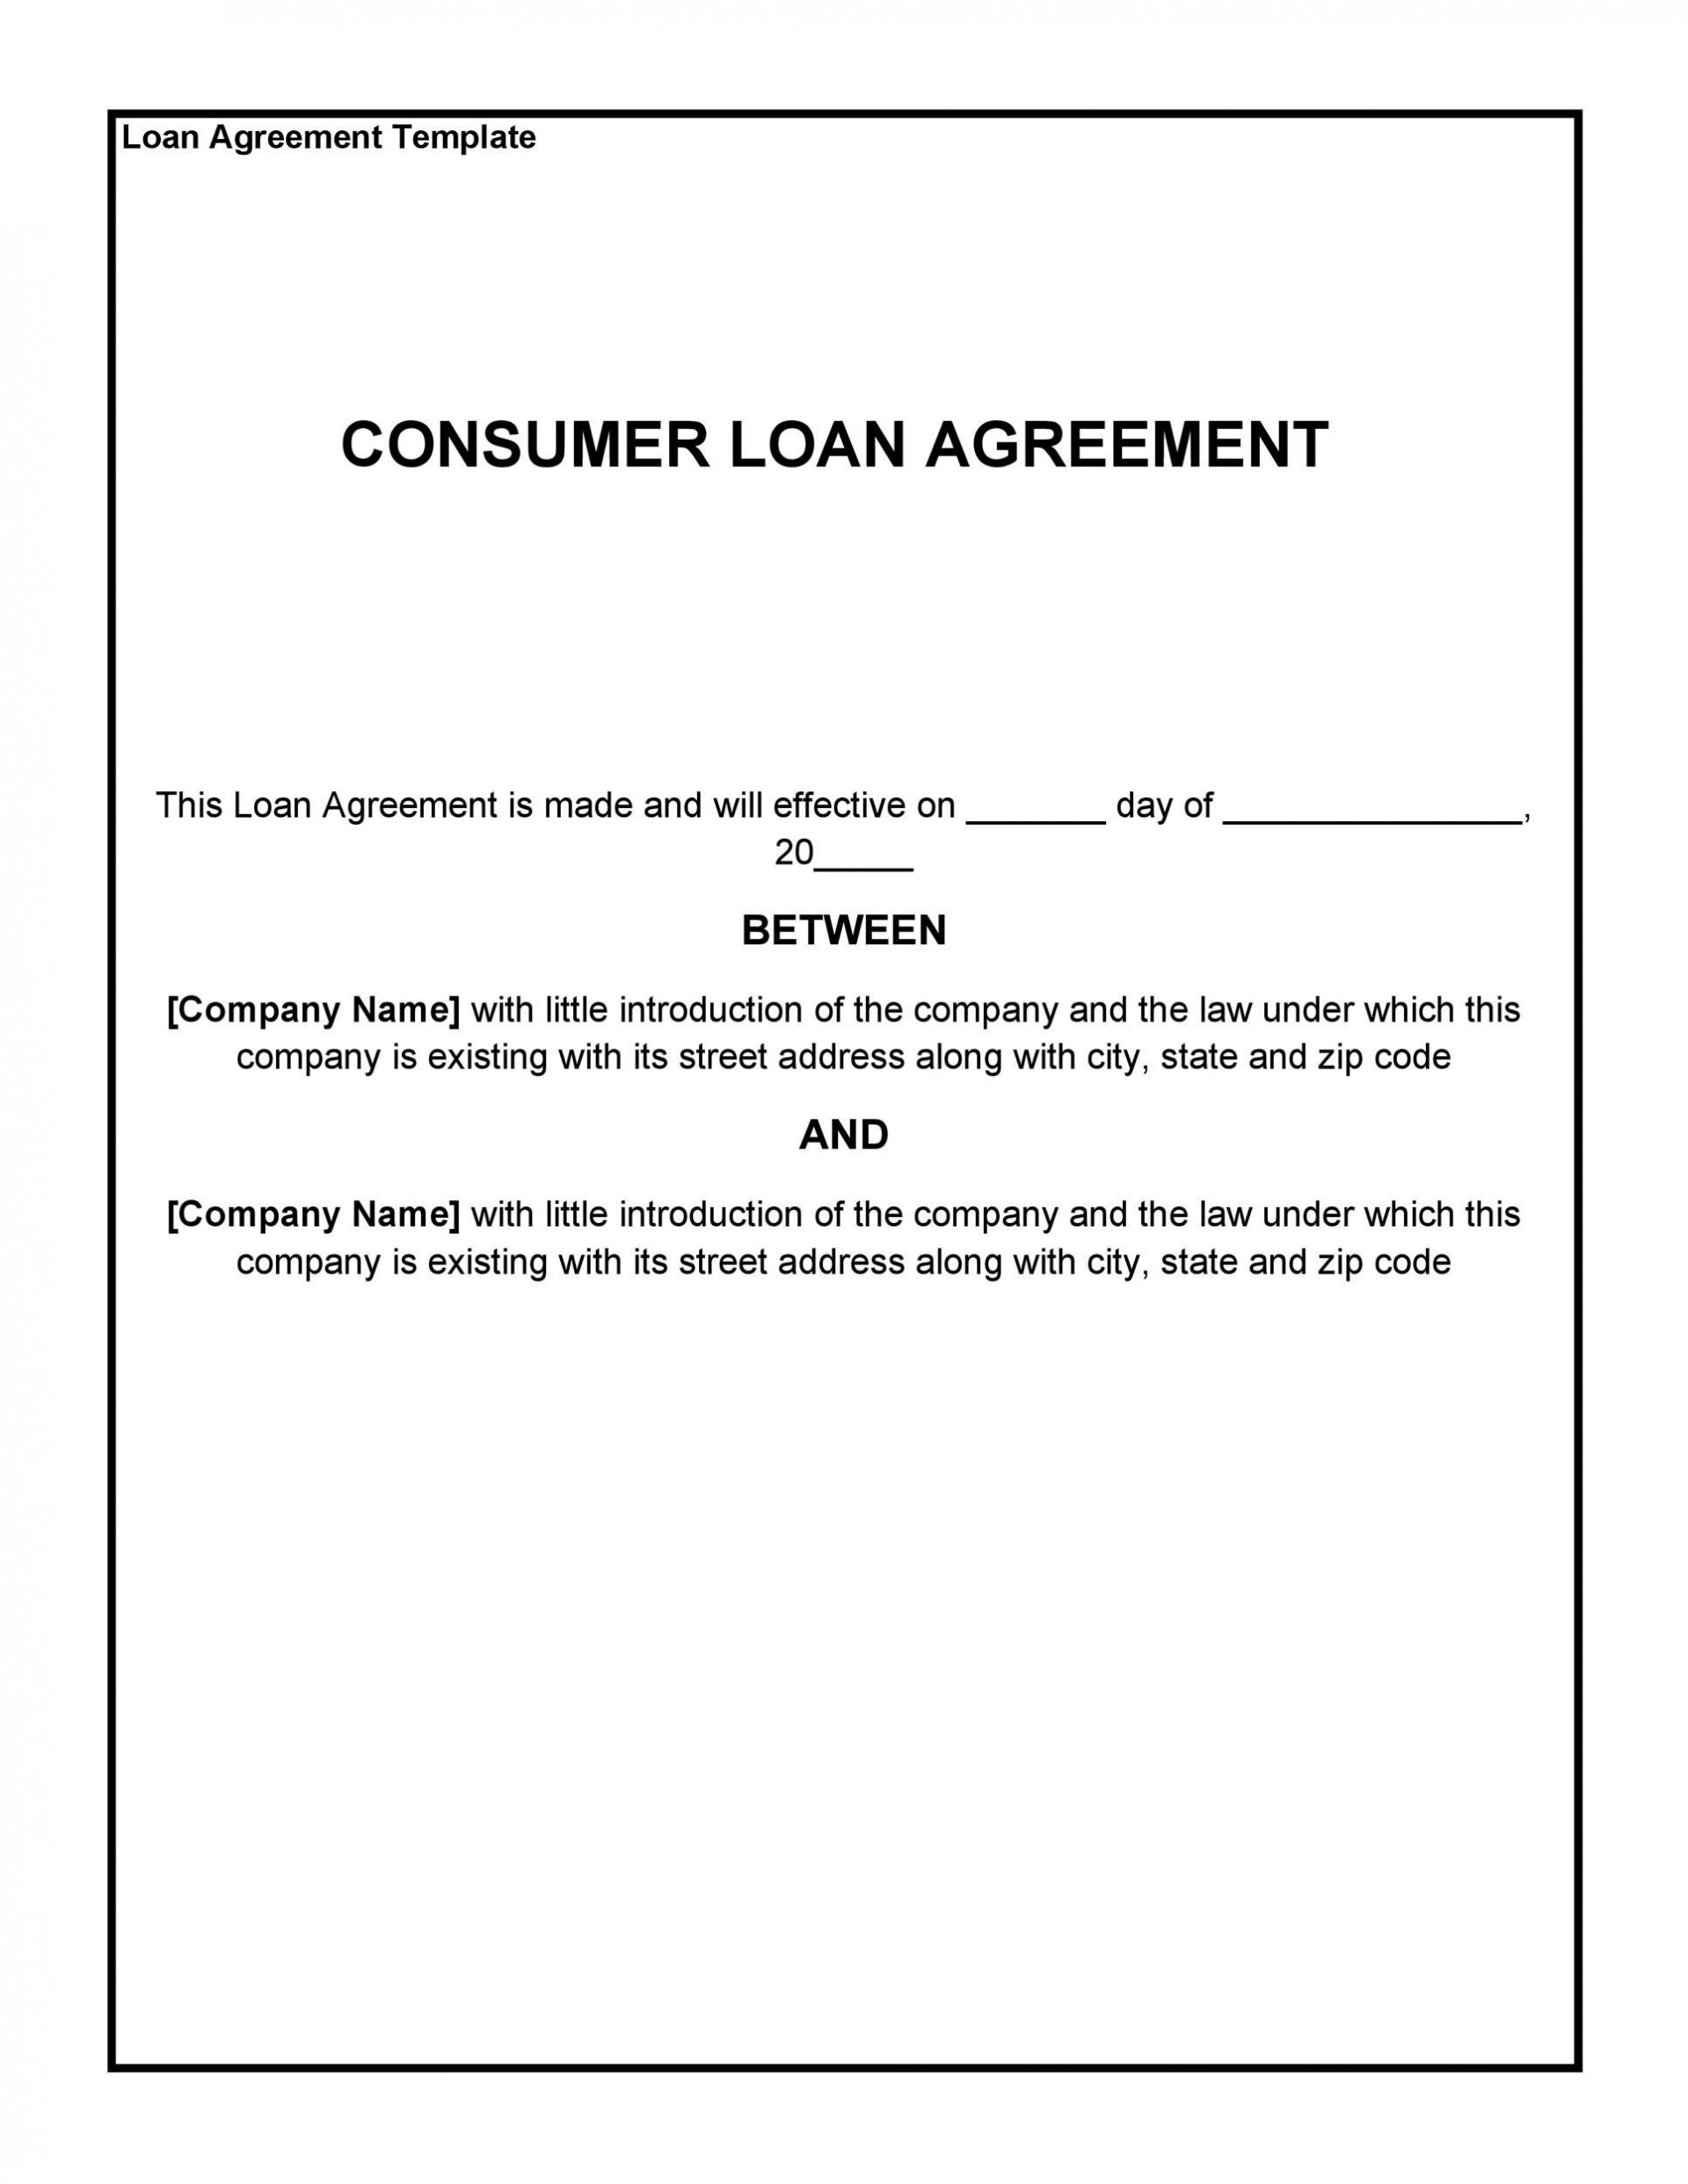 008 Singular Family Loan Agreement Template Highest Clarity  Free Uk Friend And Simple Australia1920